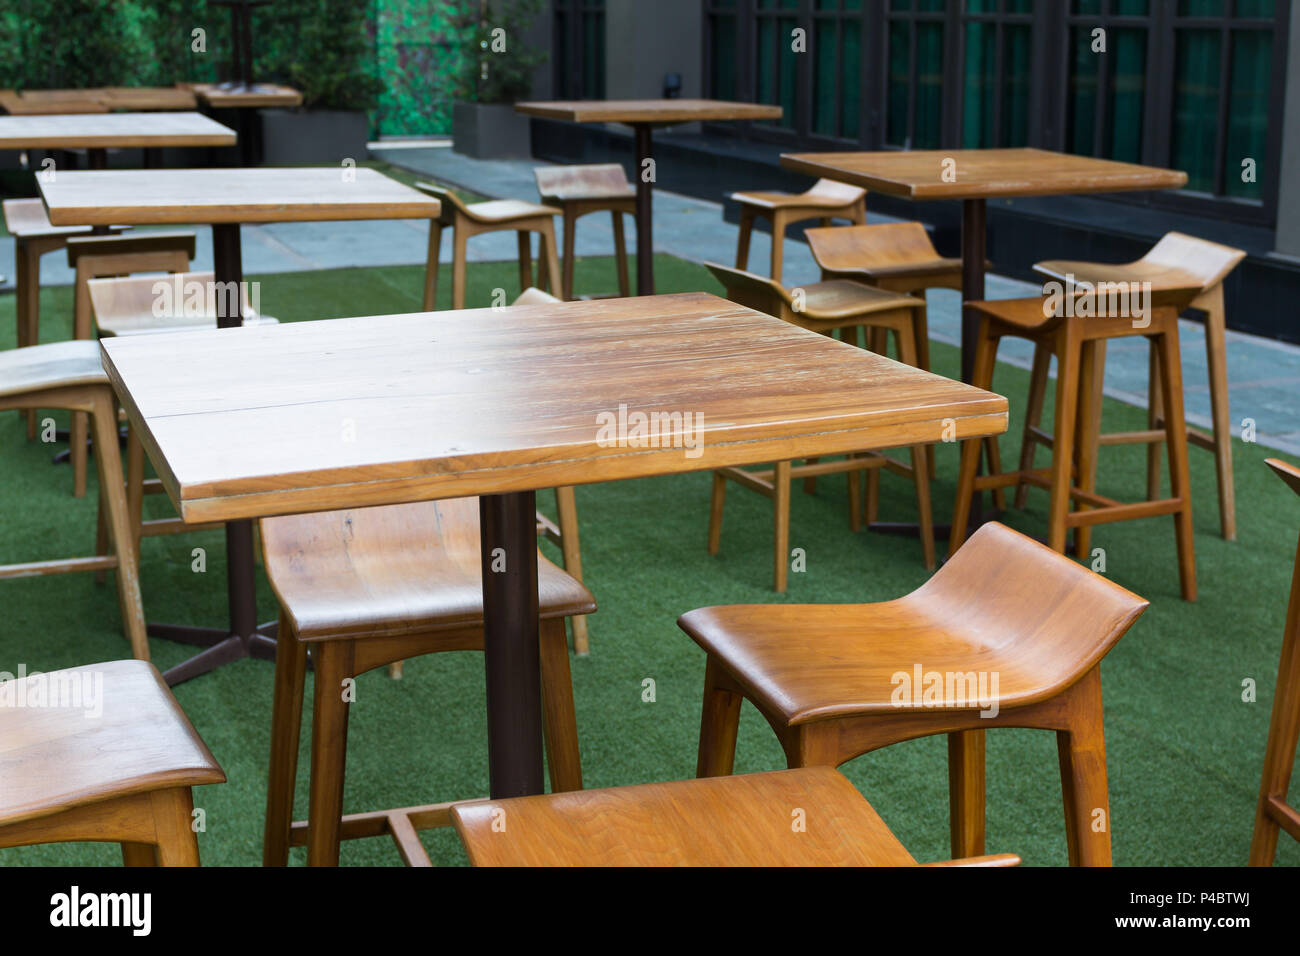 Modern Wooden Table And Chair Set At Outdoor Luxury Cafe Stock Photo Alamy